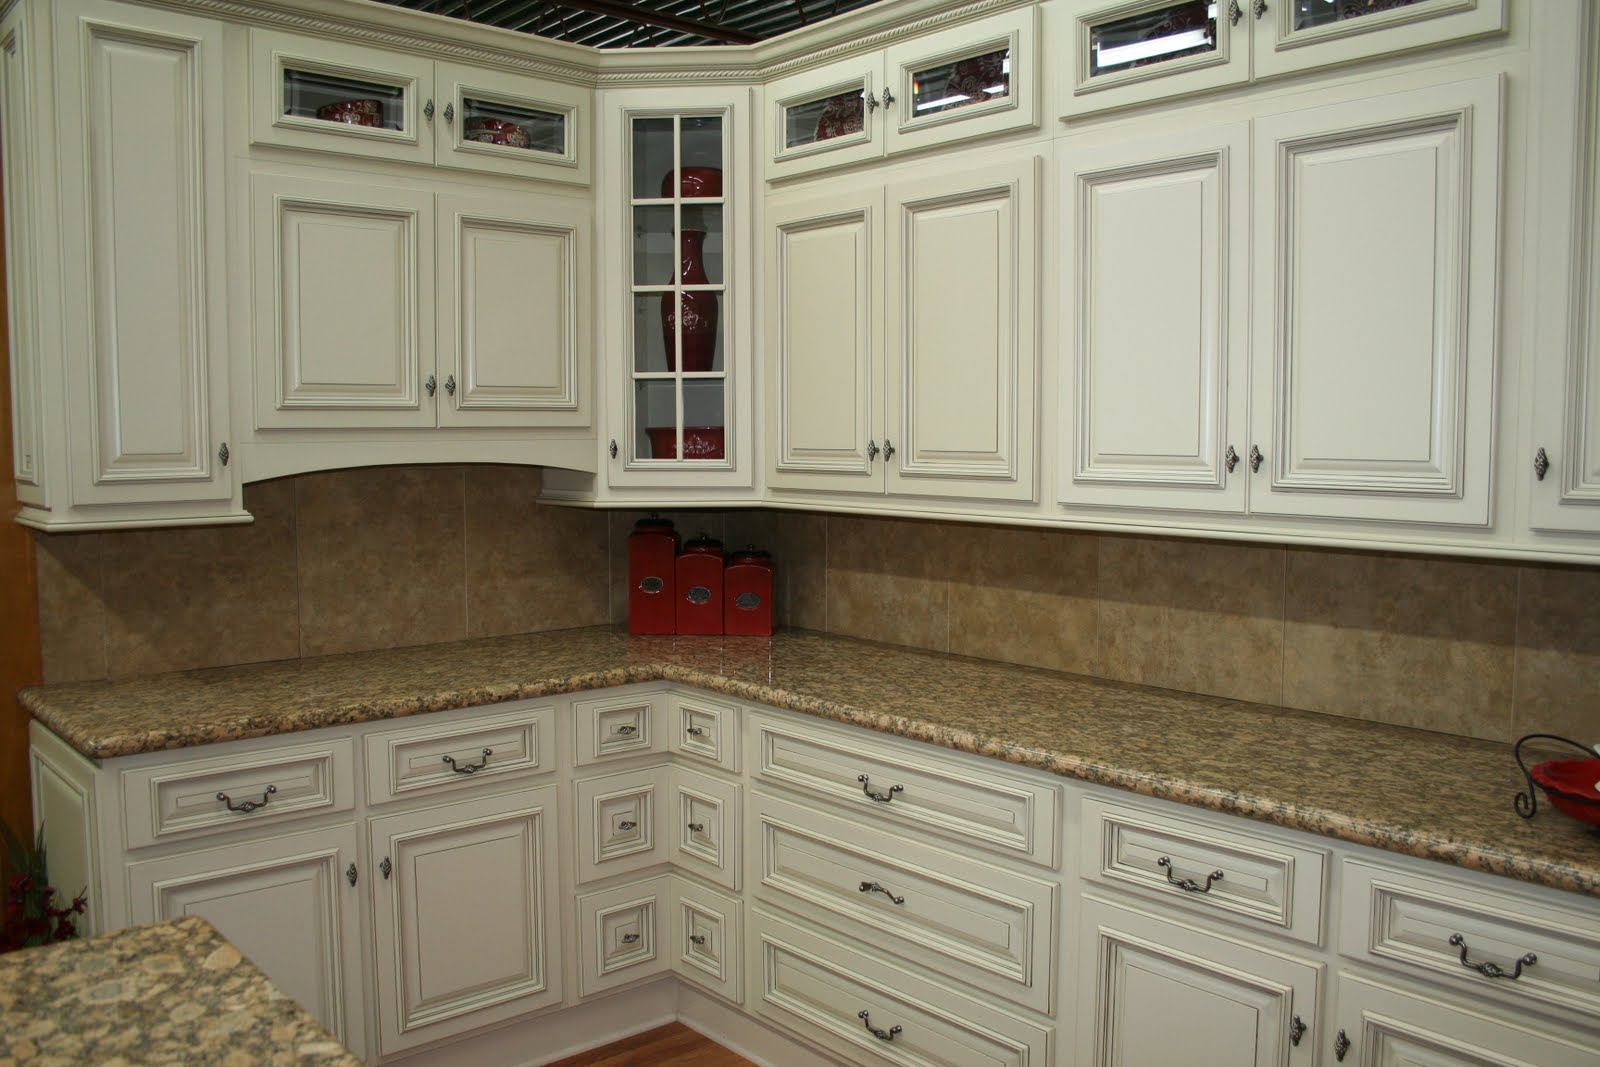 refinishing old kitchen cabinets refinish kitchen cabinets antique white roselawnlutheran 25314